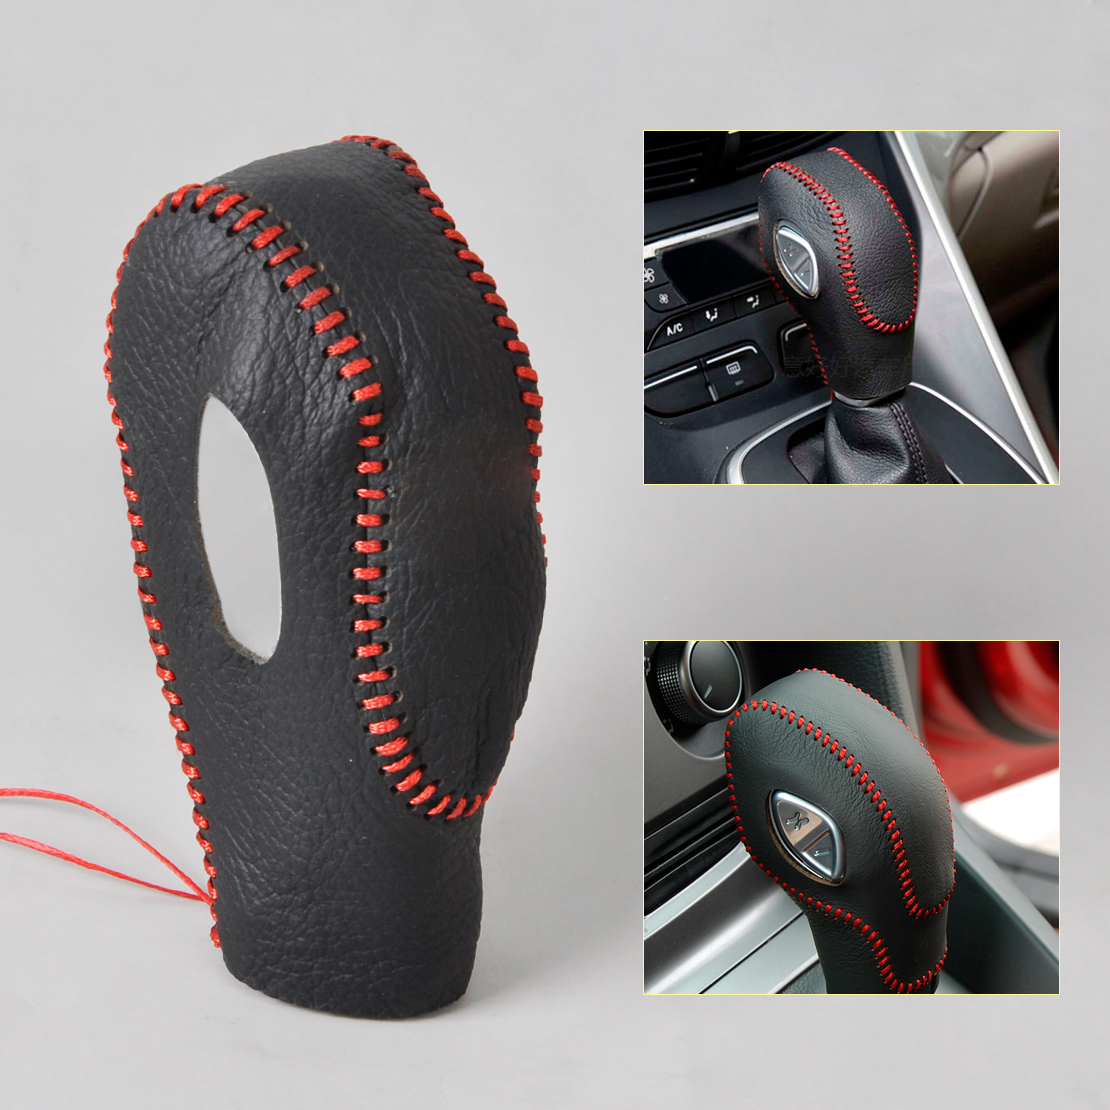 CITALL Genuine Black Leather Red Thread Gear Shift Knob Cover for Ford Focus 3 2012 2013 Kuga Escape 2013 2014 2015 Automatic AT